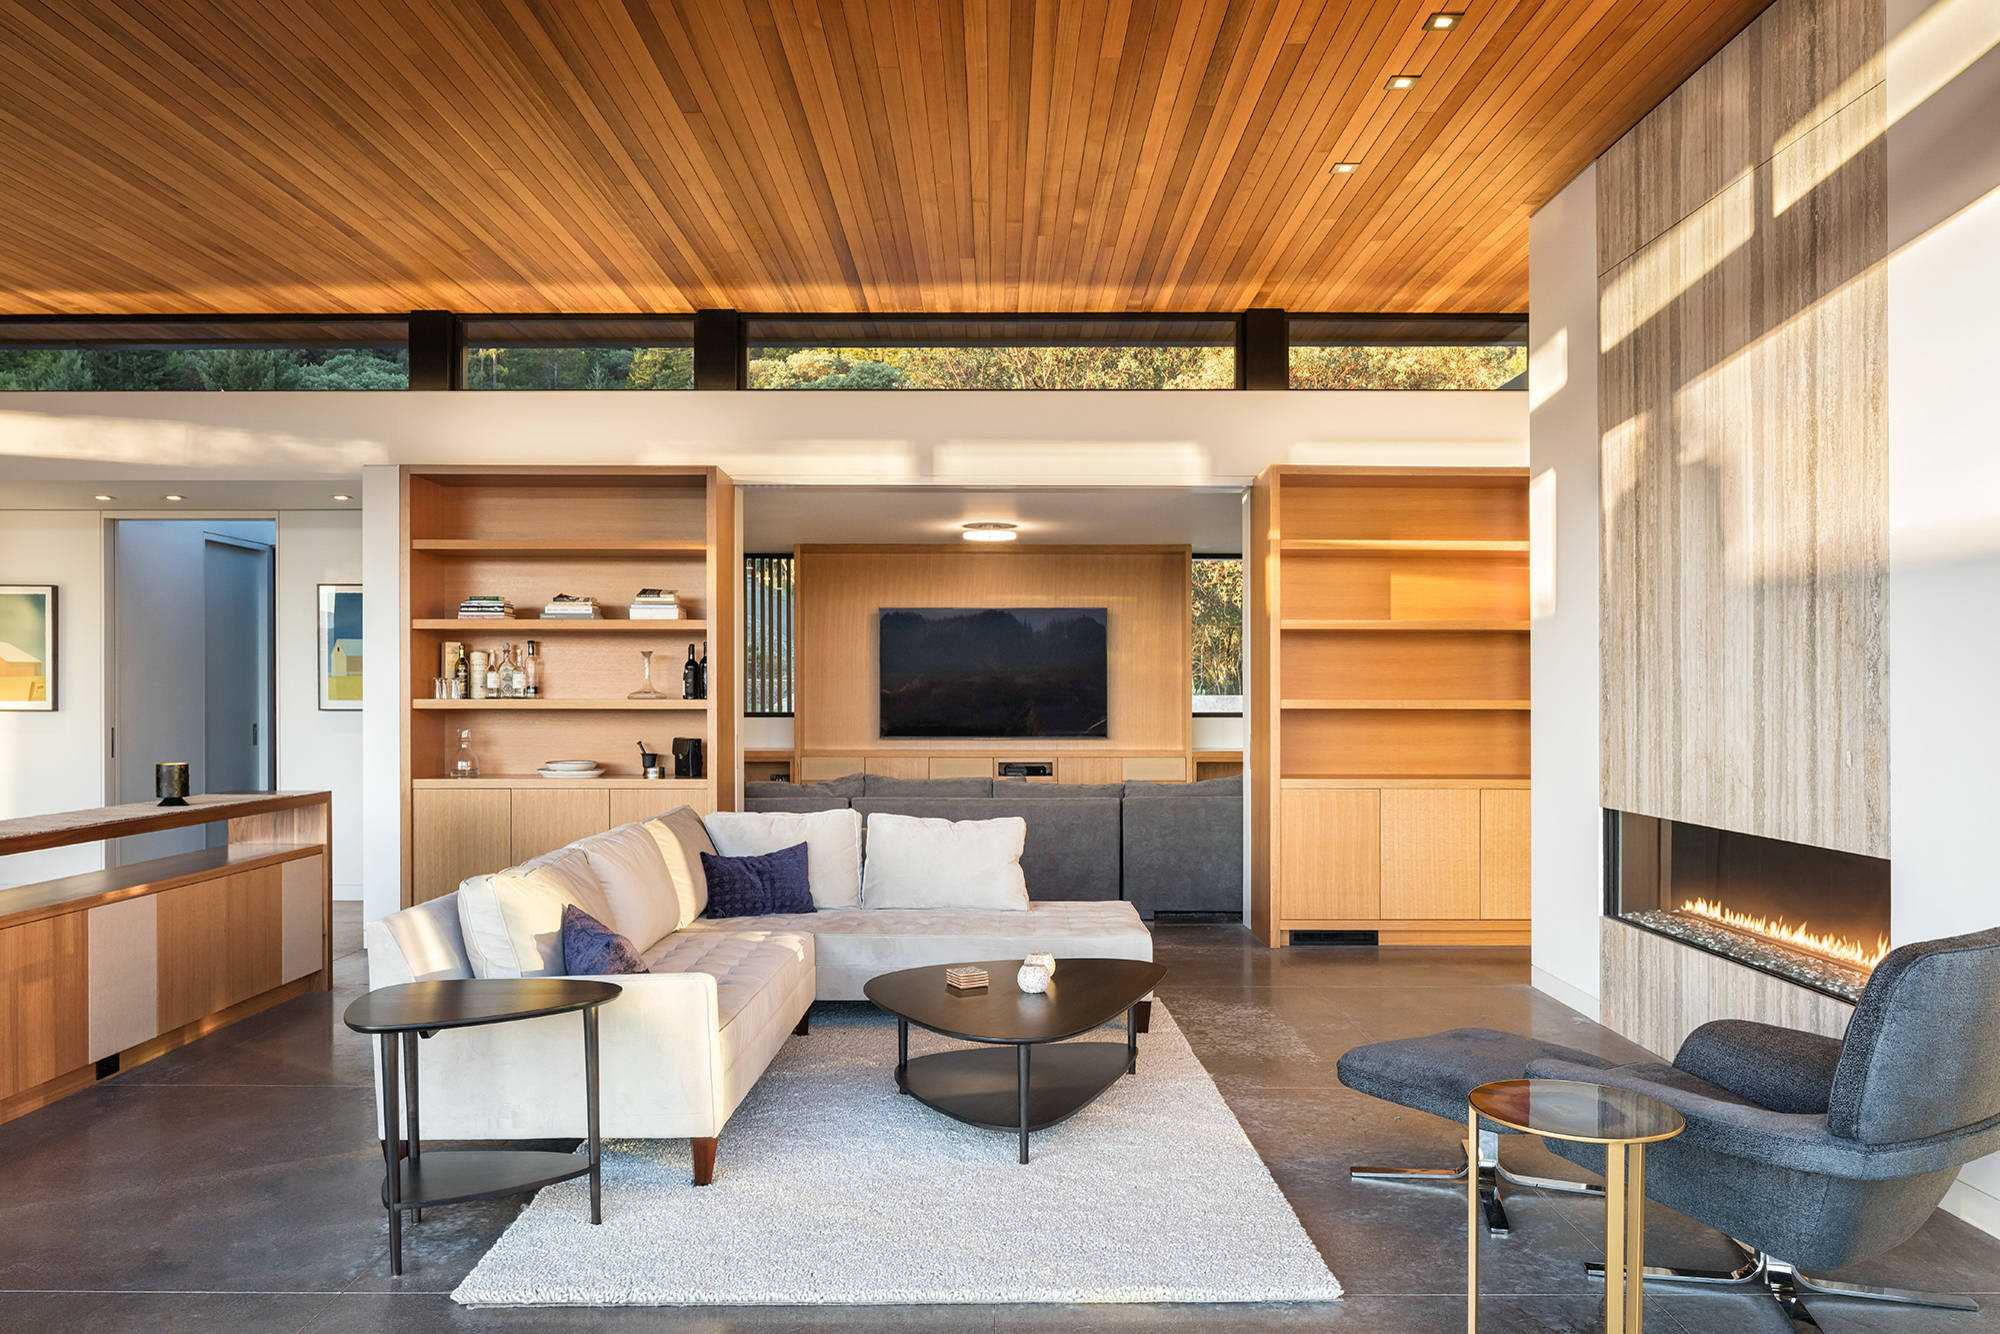 15 Beautiful Modern Living Room Designs Your Home ... on Room Decor Photos  id=19162